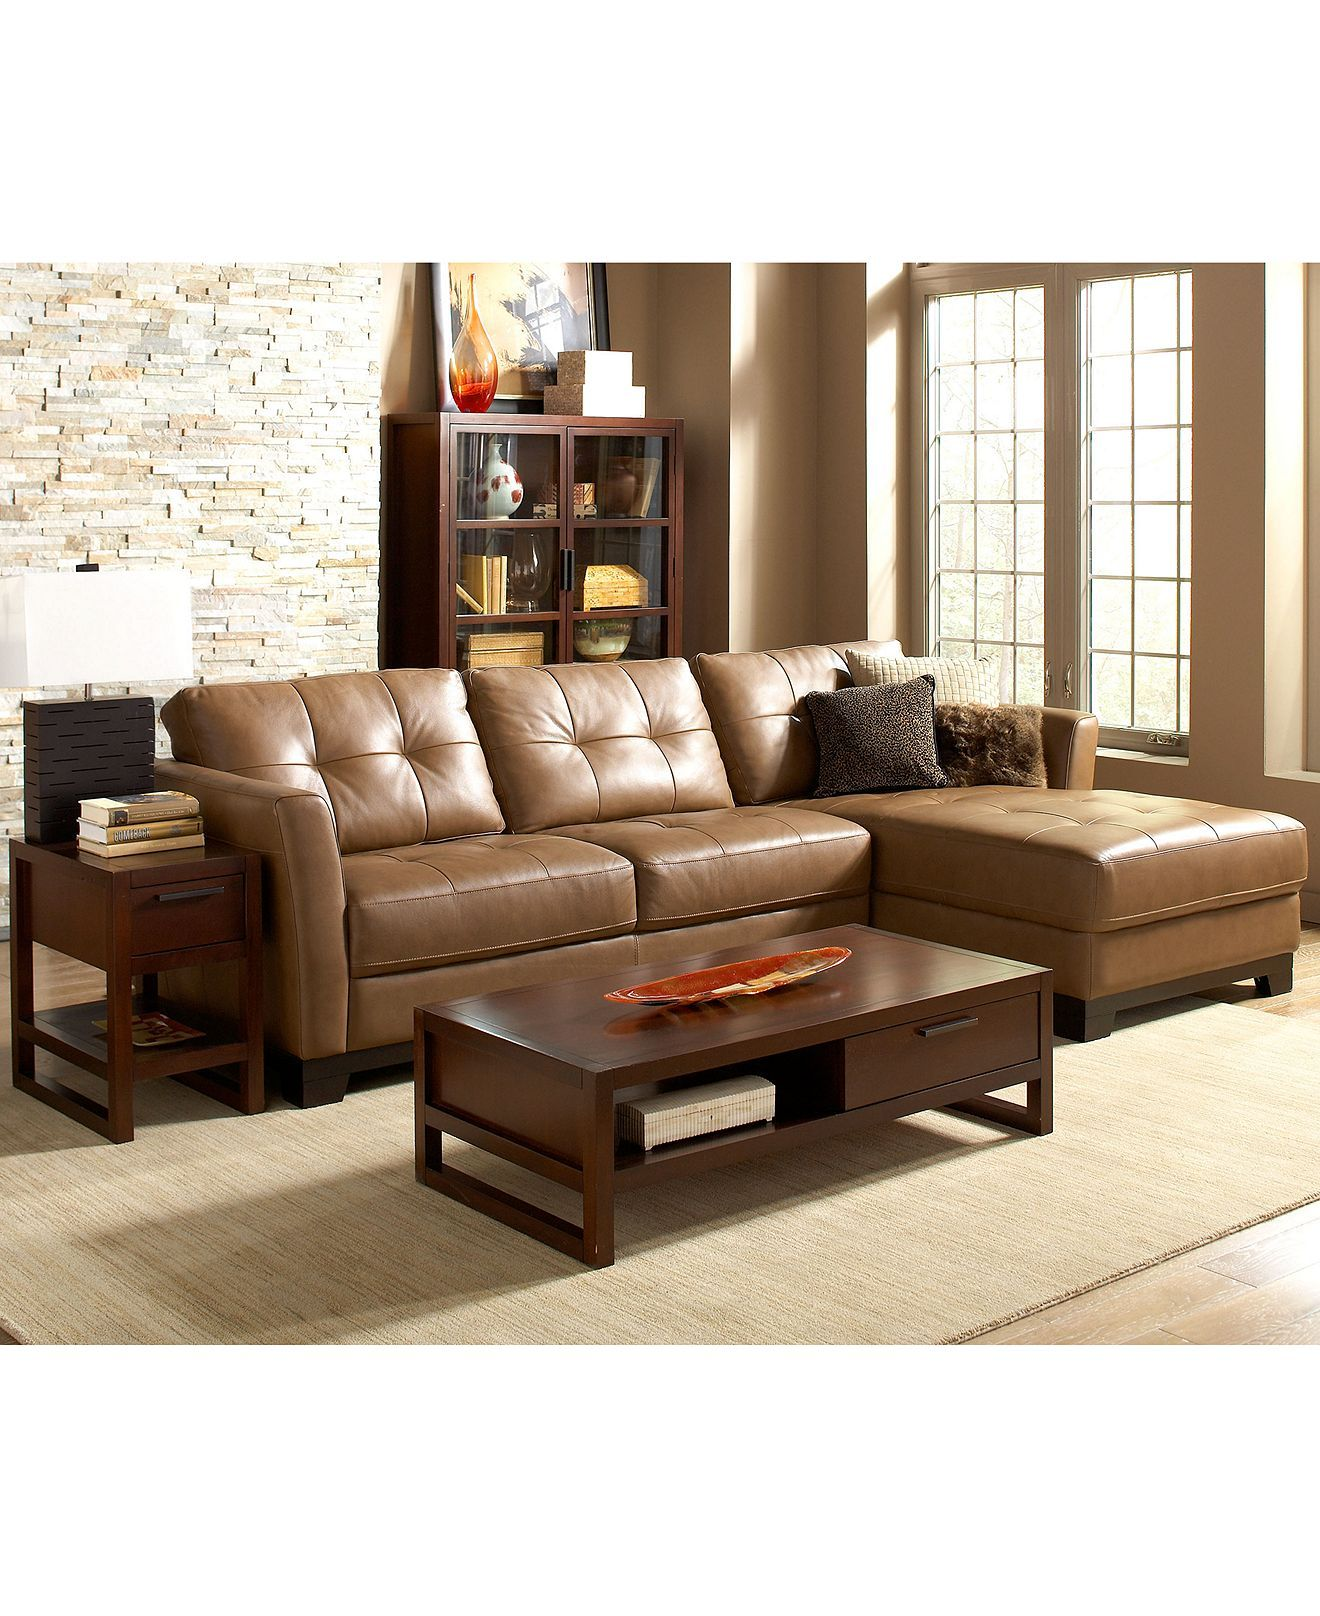 martino leather chaise sectional sofa 2 piece apartment and designs of sets in kenya living room furniture ...